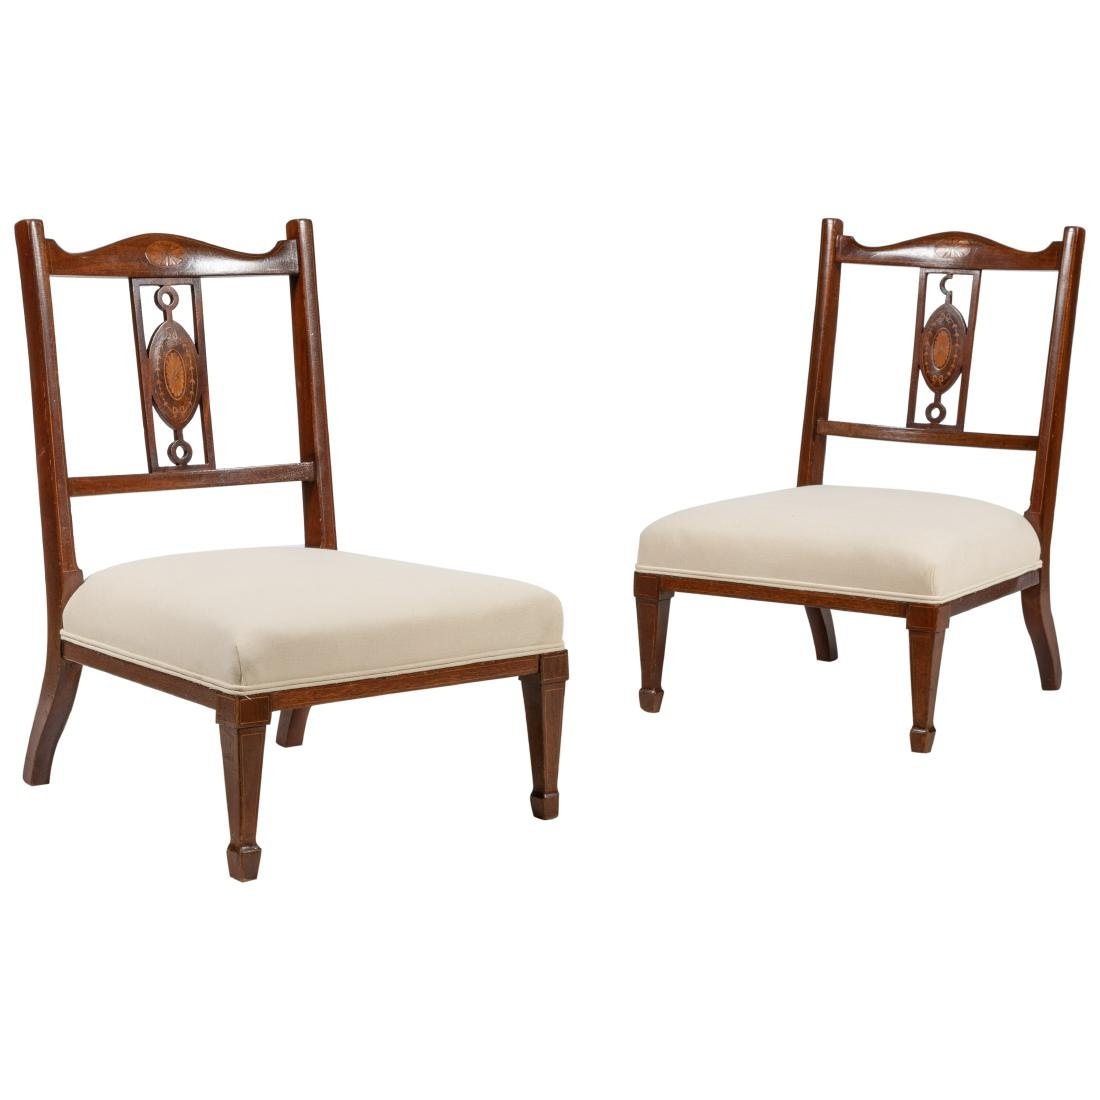 Edwardian Inlaid Child's Chairs